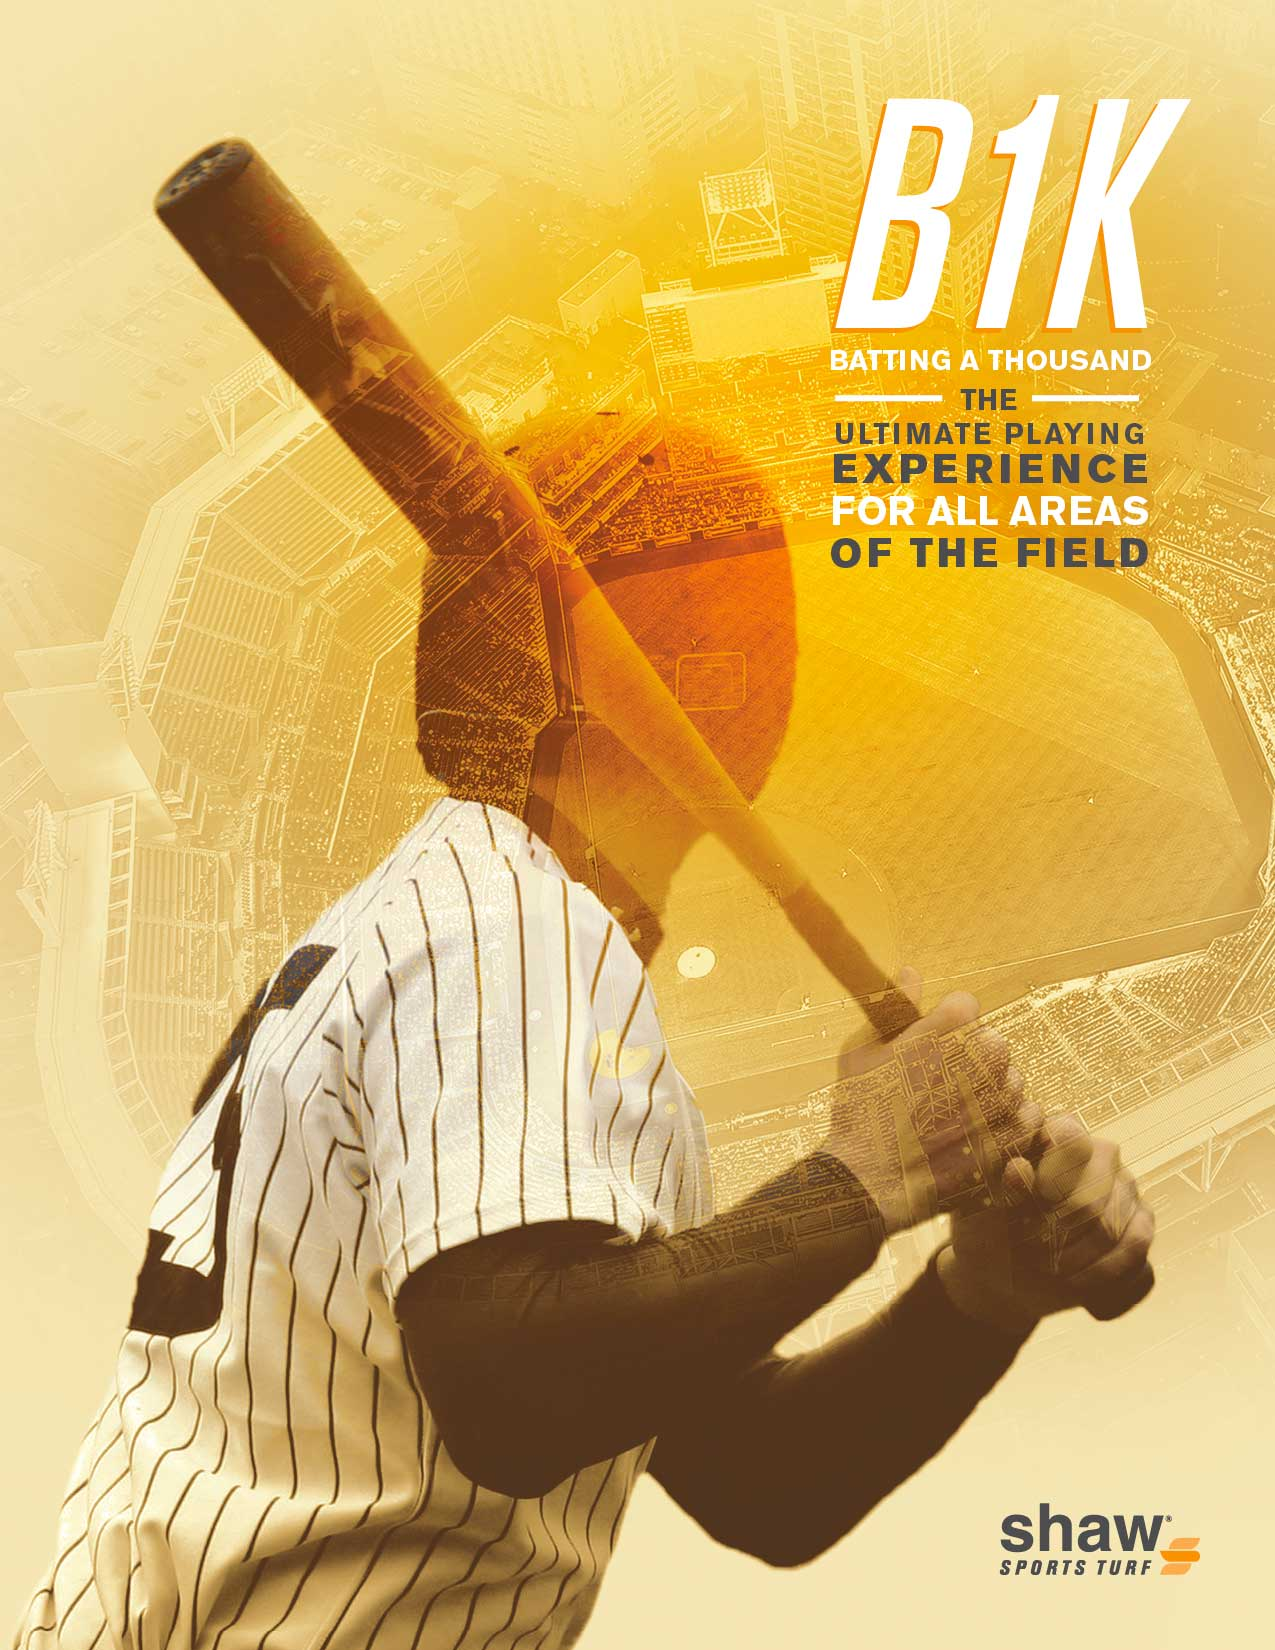 B1K: Batting A Thousand Ushers in a New Generation of Synthetic Baseball Turf Image